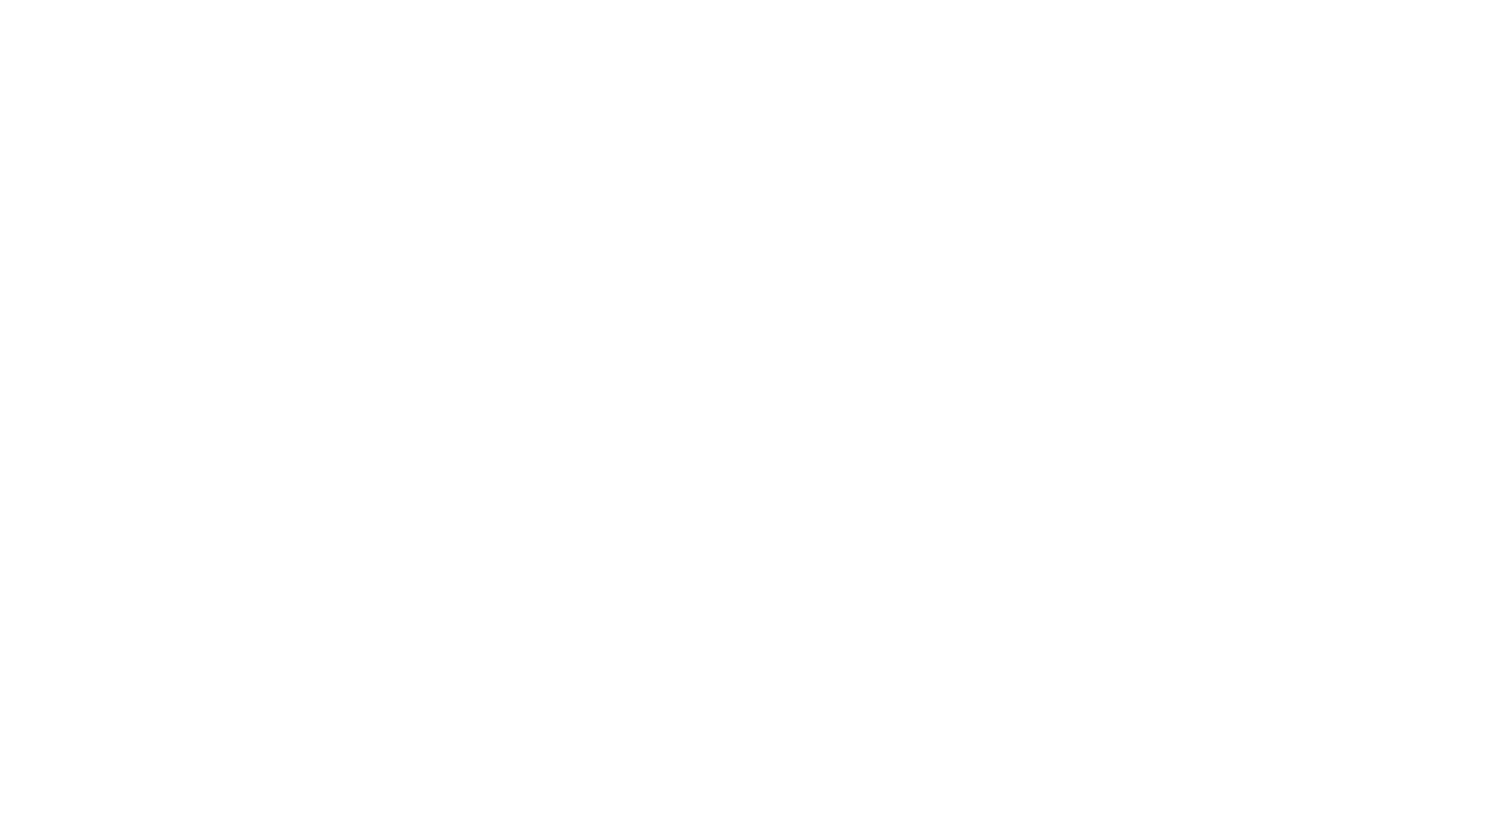 Ed Bishop Voice Overs